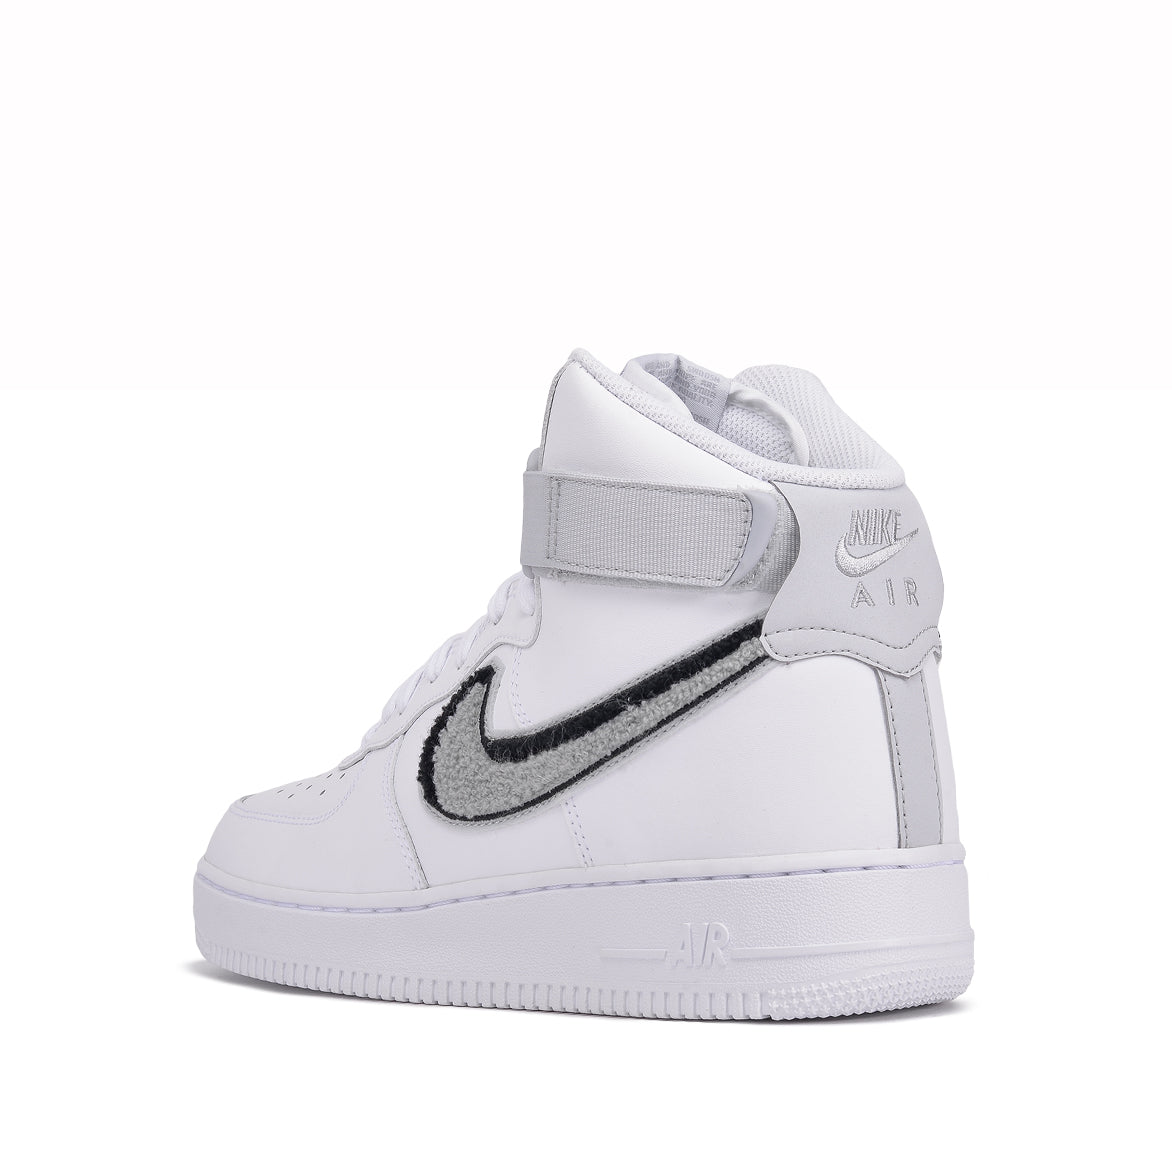 "AIR FORCE 1 HIGH `07 LV8 ""CHENILLE SWOOSH"" - WHITE"